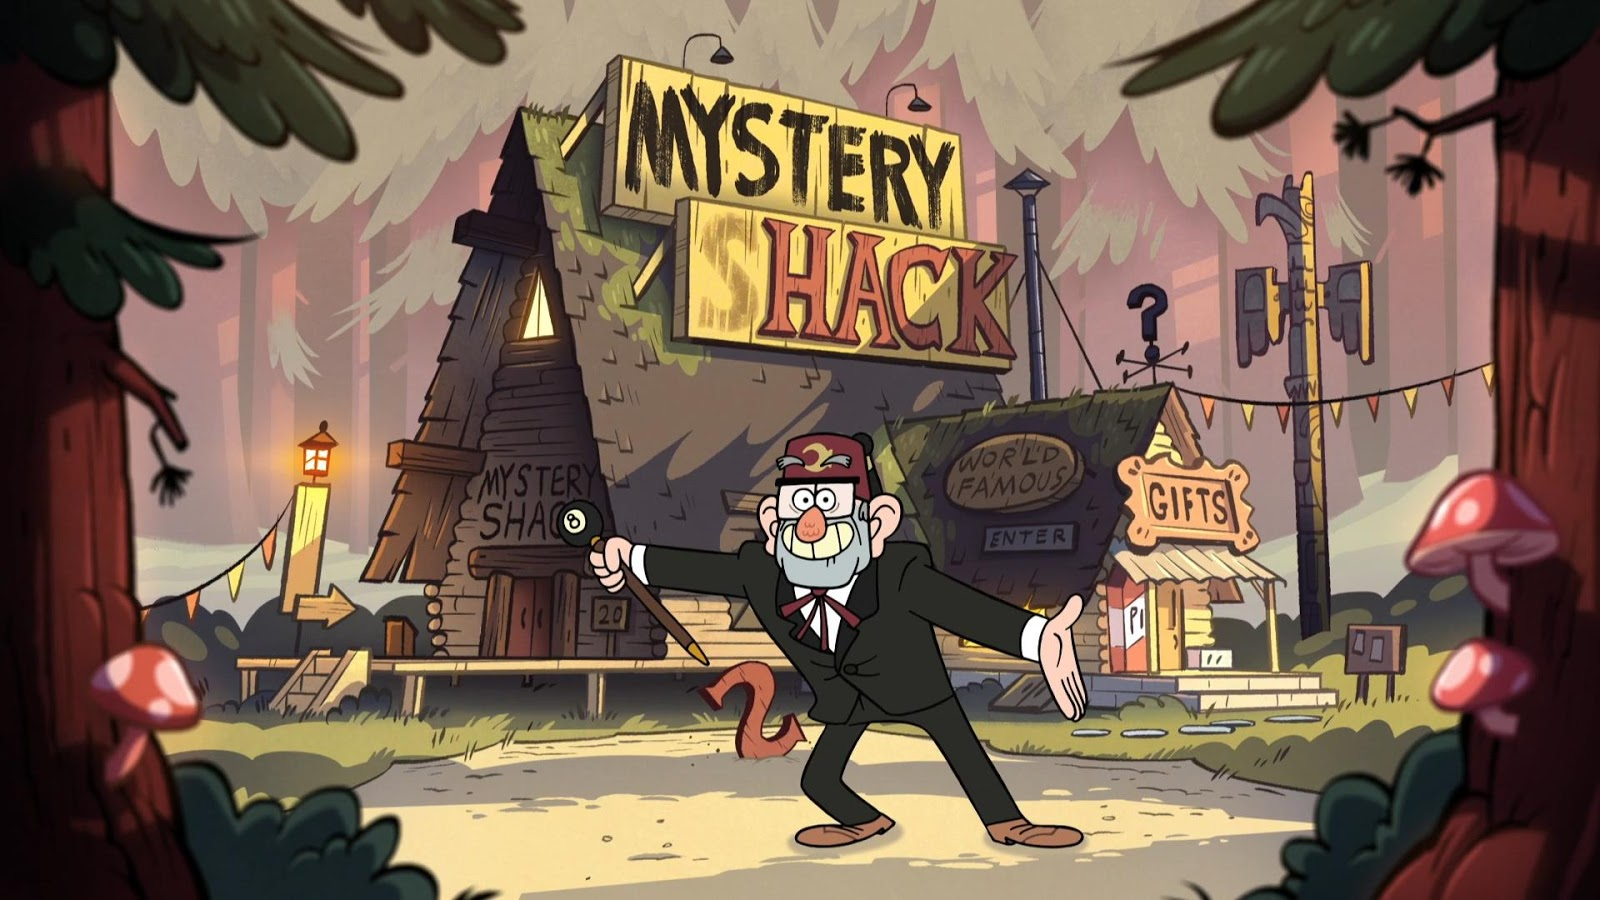 50+ HD 4K Gravity Falls Wallpapers 1080p For Desktop (2019